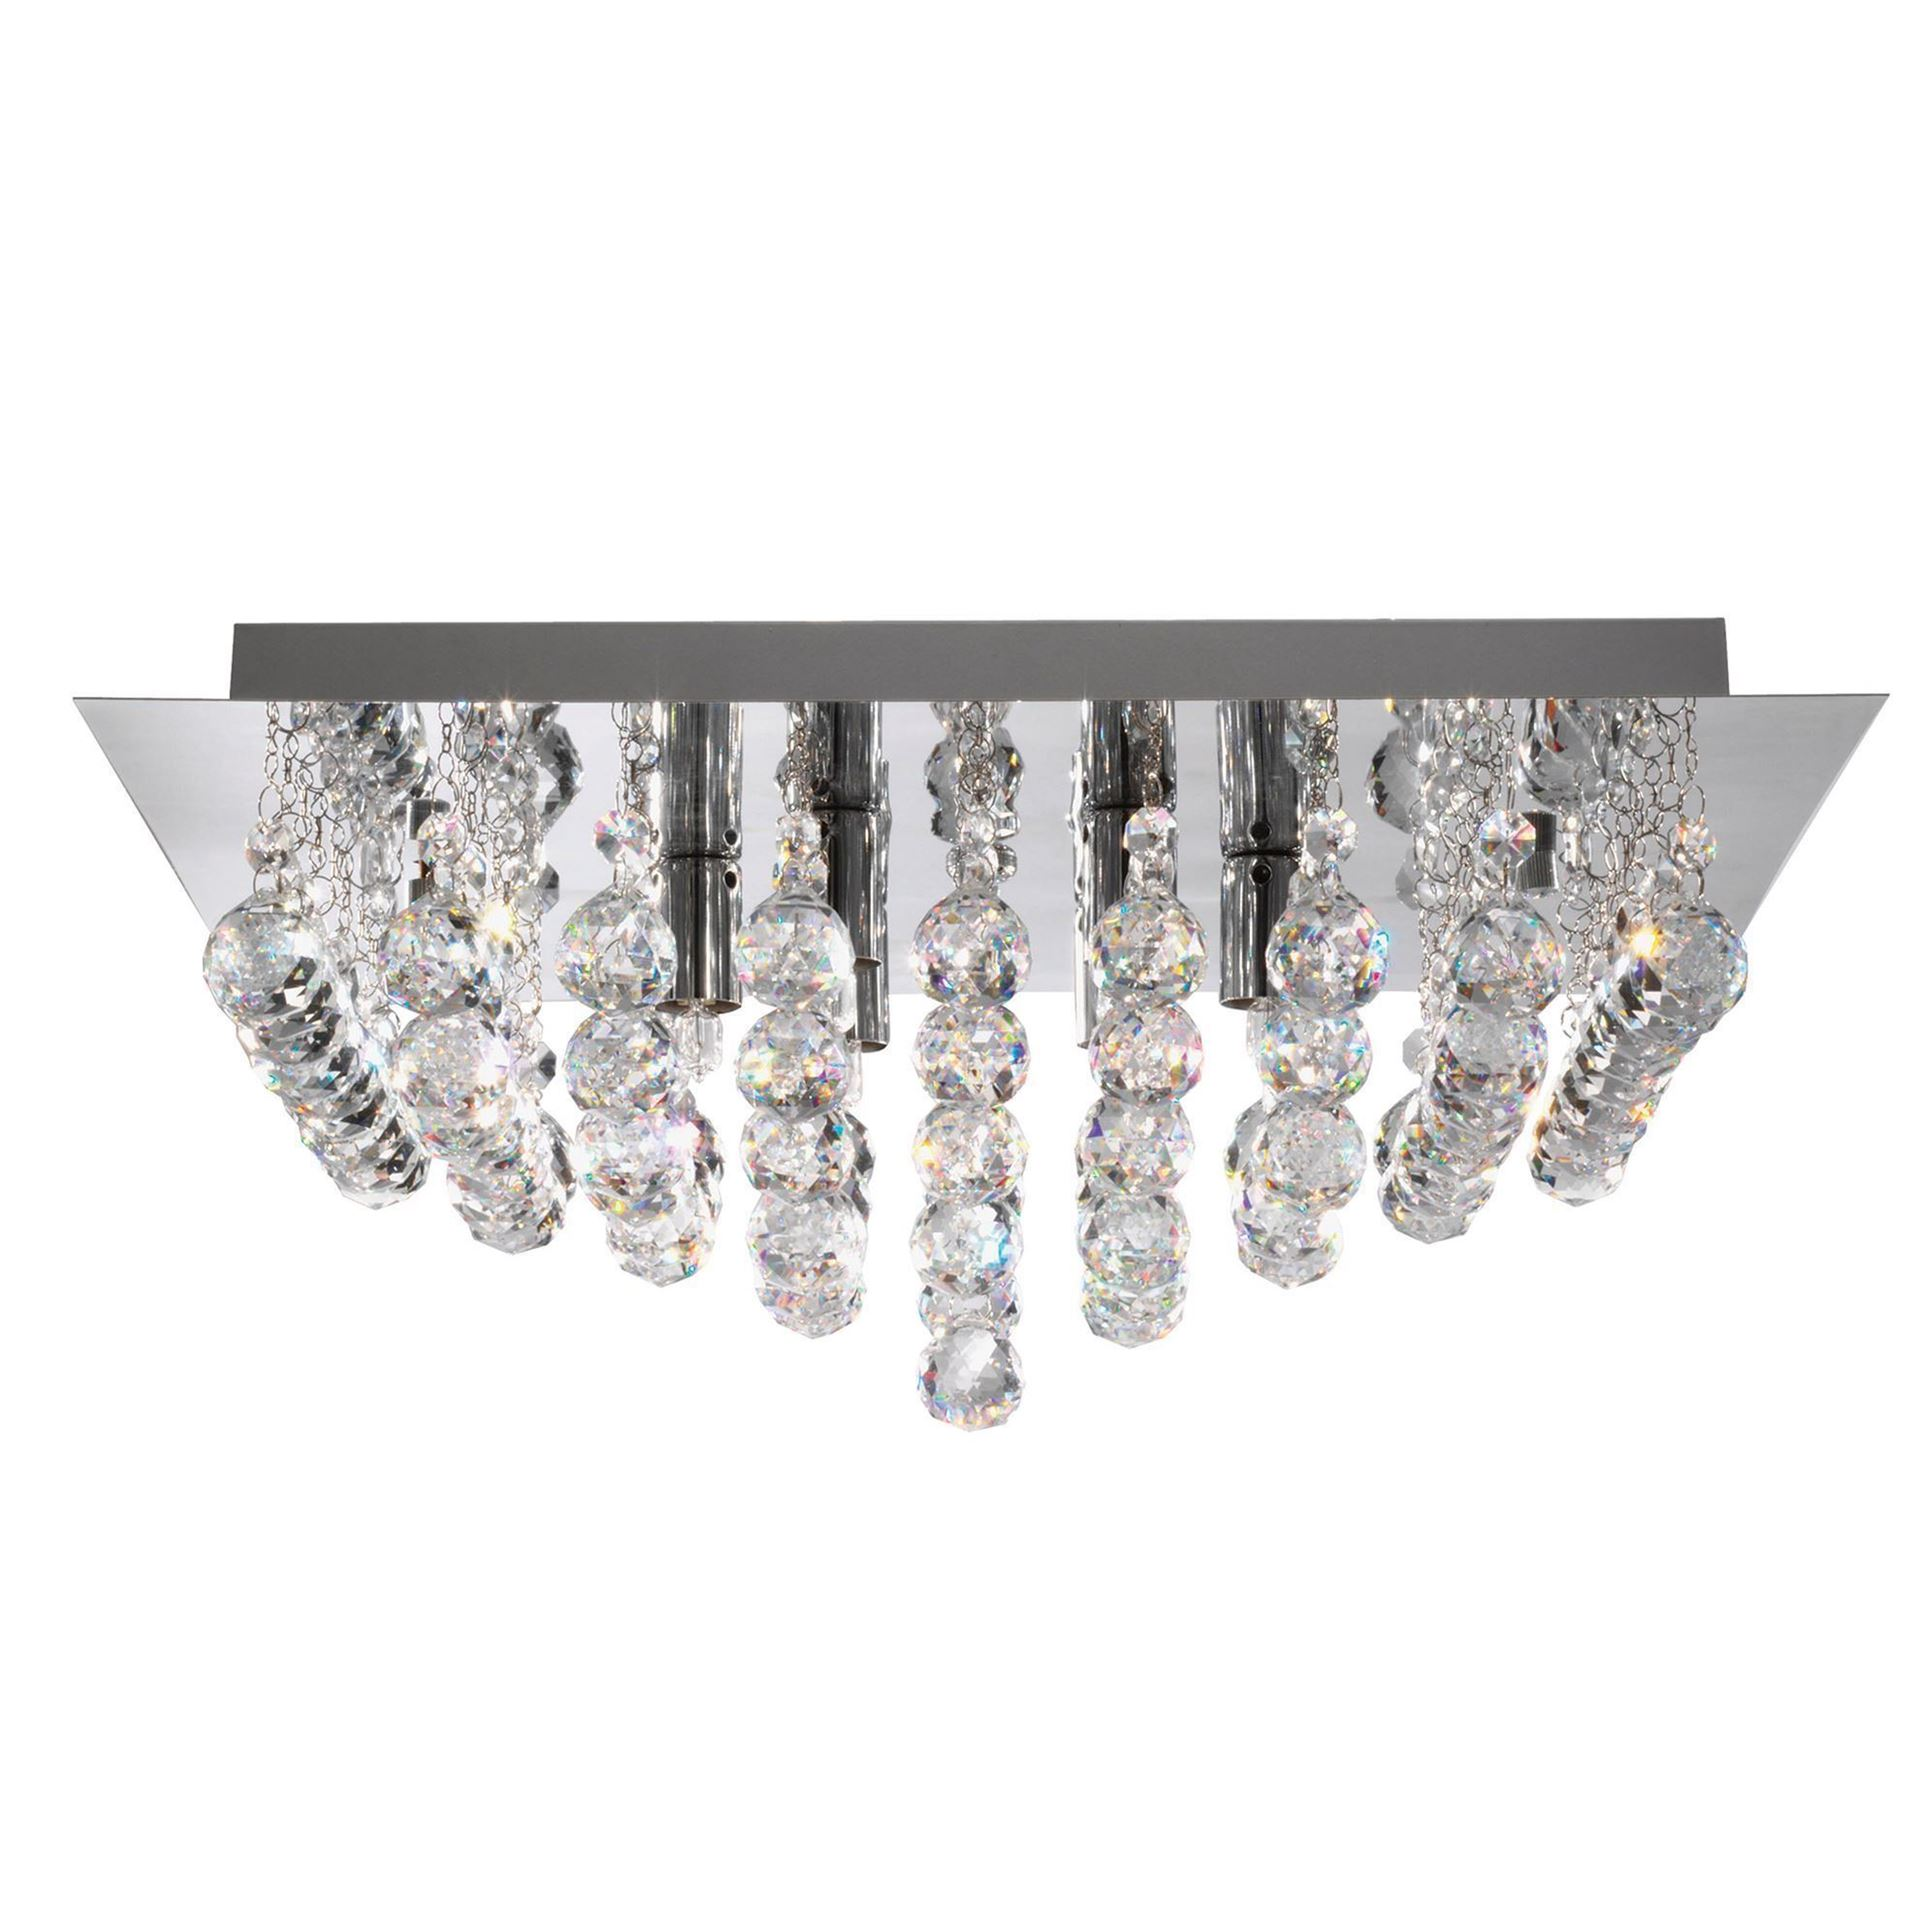 HANNA CHROME 6 LIGHT SQUARE SEMI-FLUSH WITH CLEAR FACETTED CRYSTAL BALLS 6406-6CC